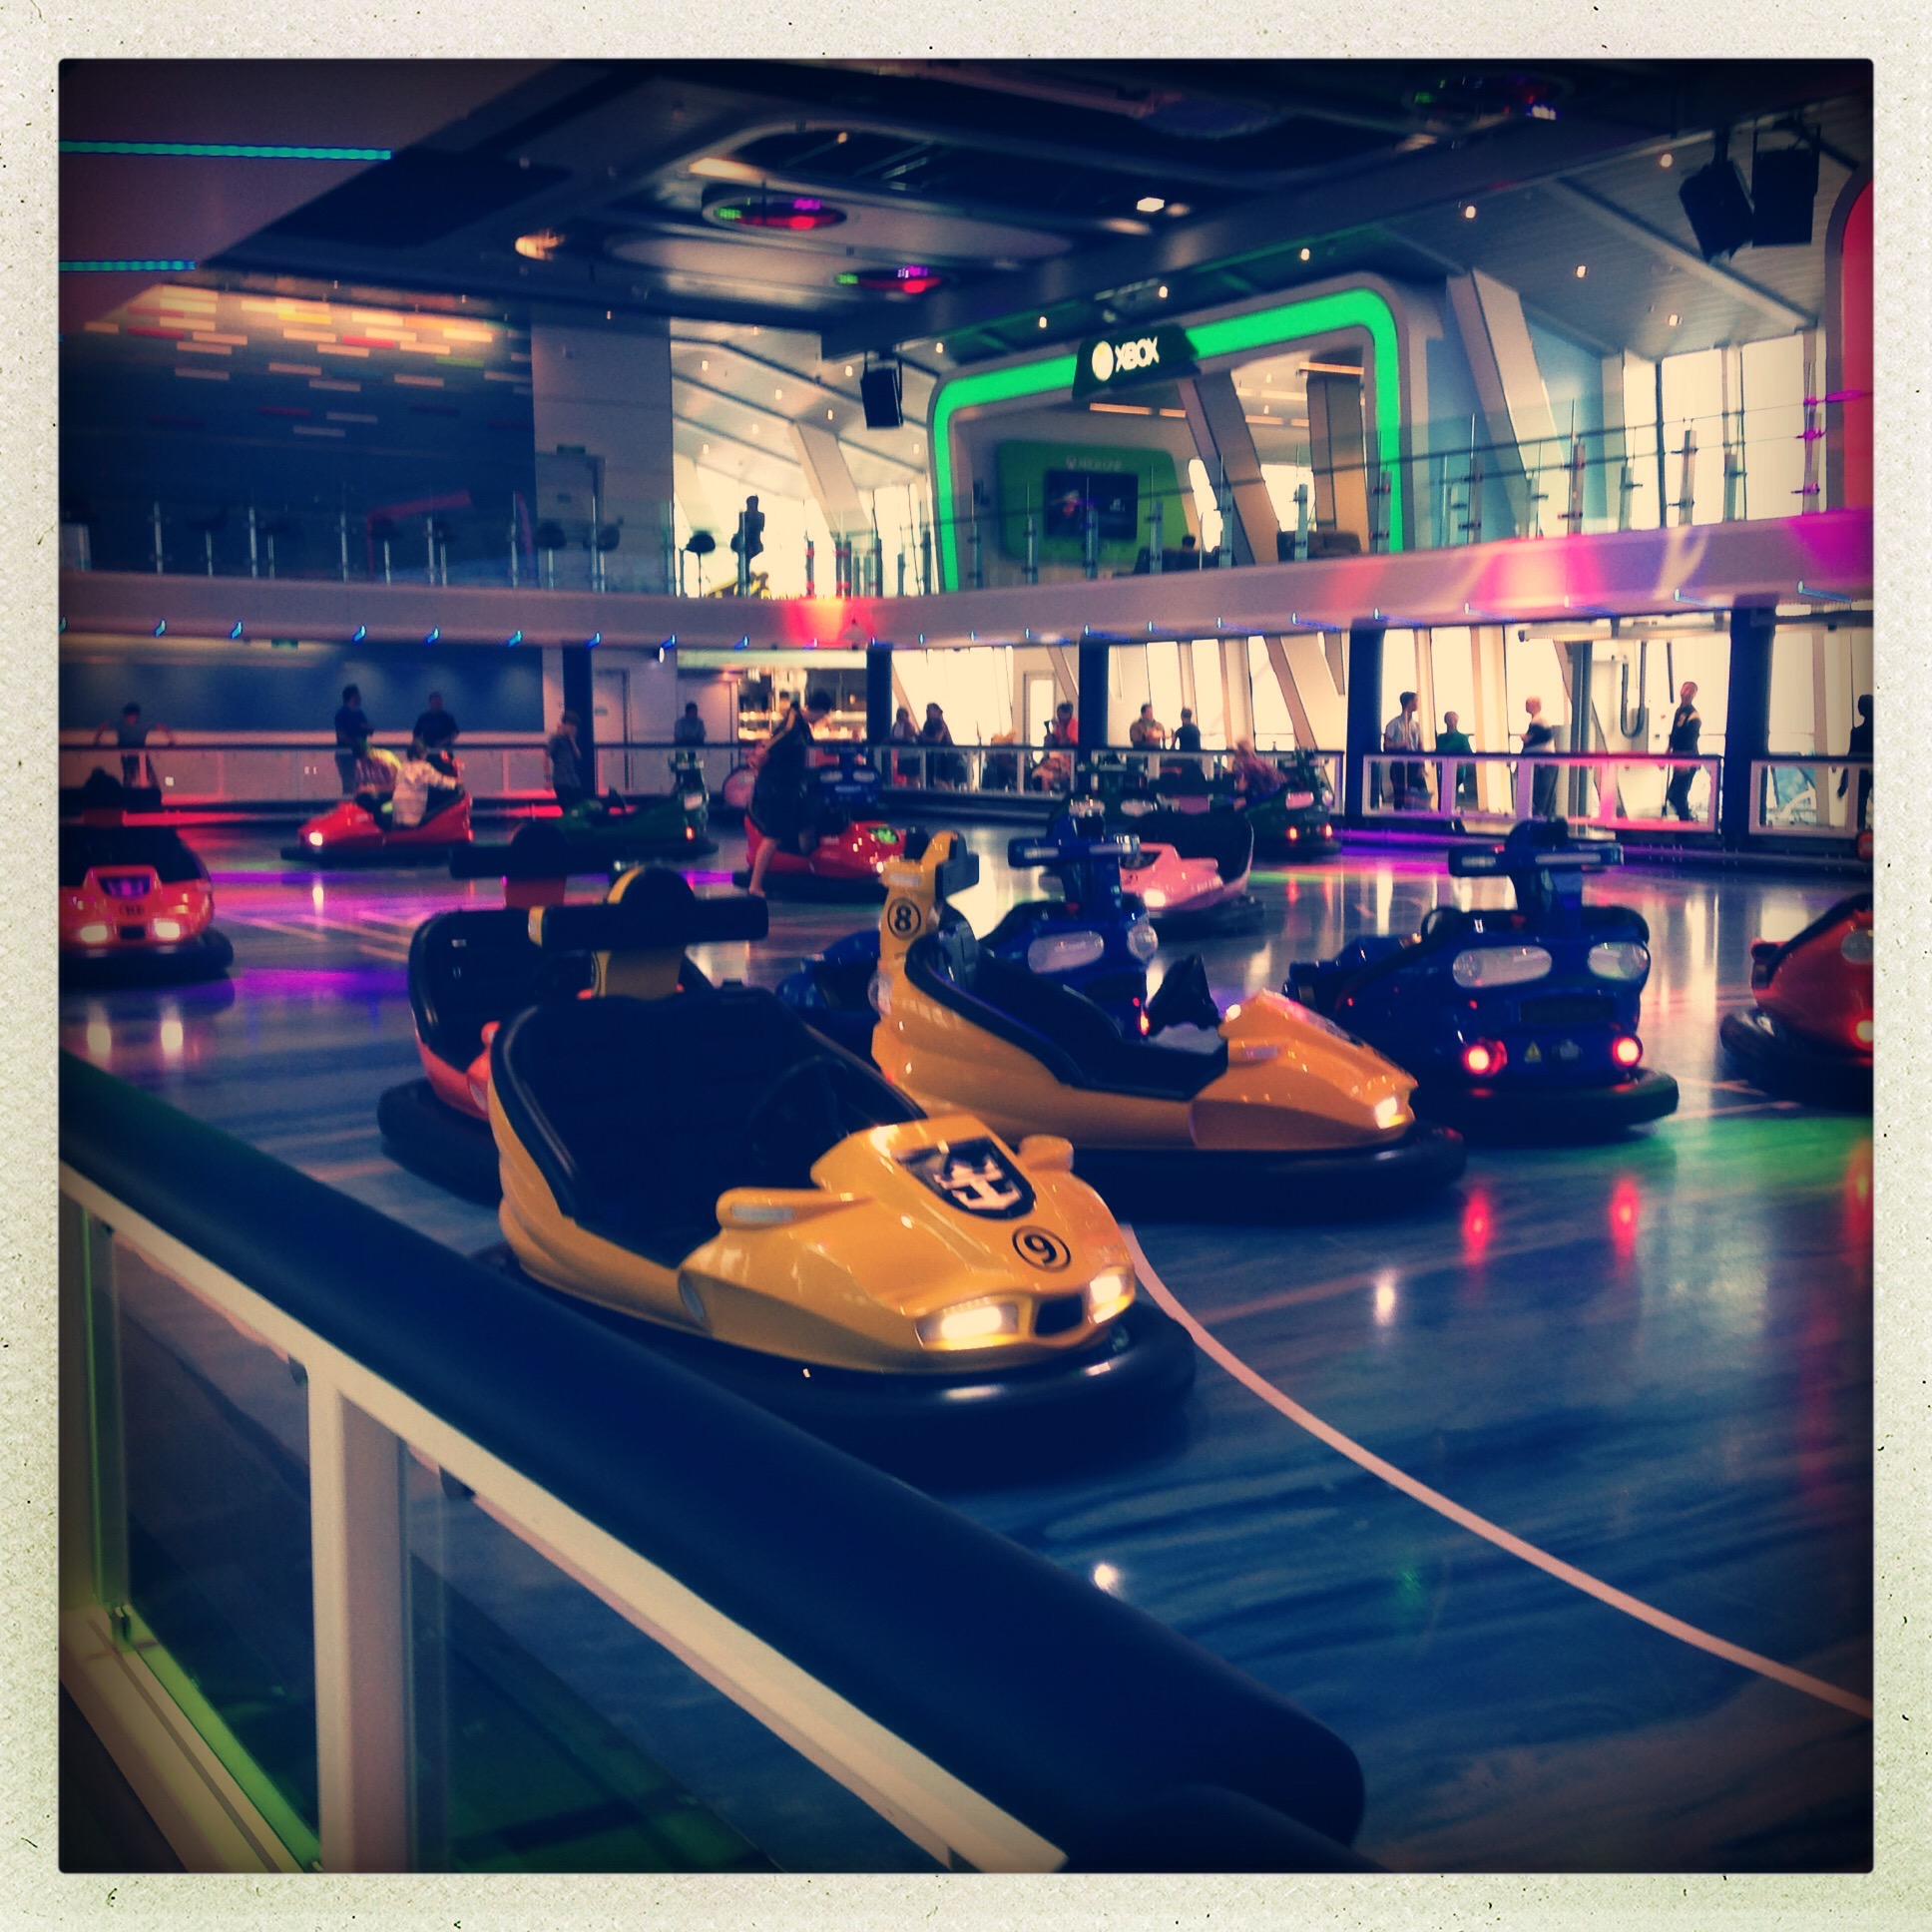 Anthem of the Seas dodgems